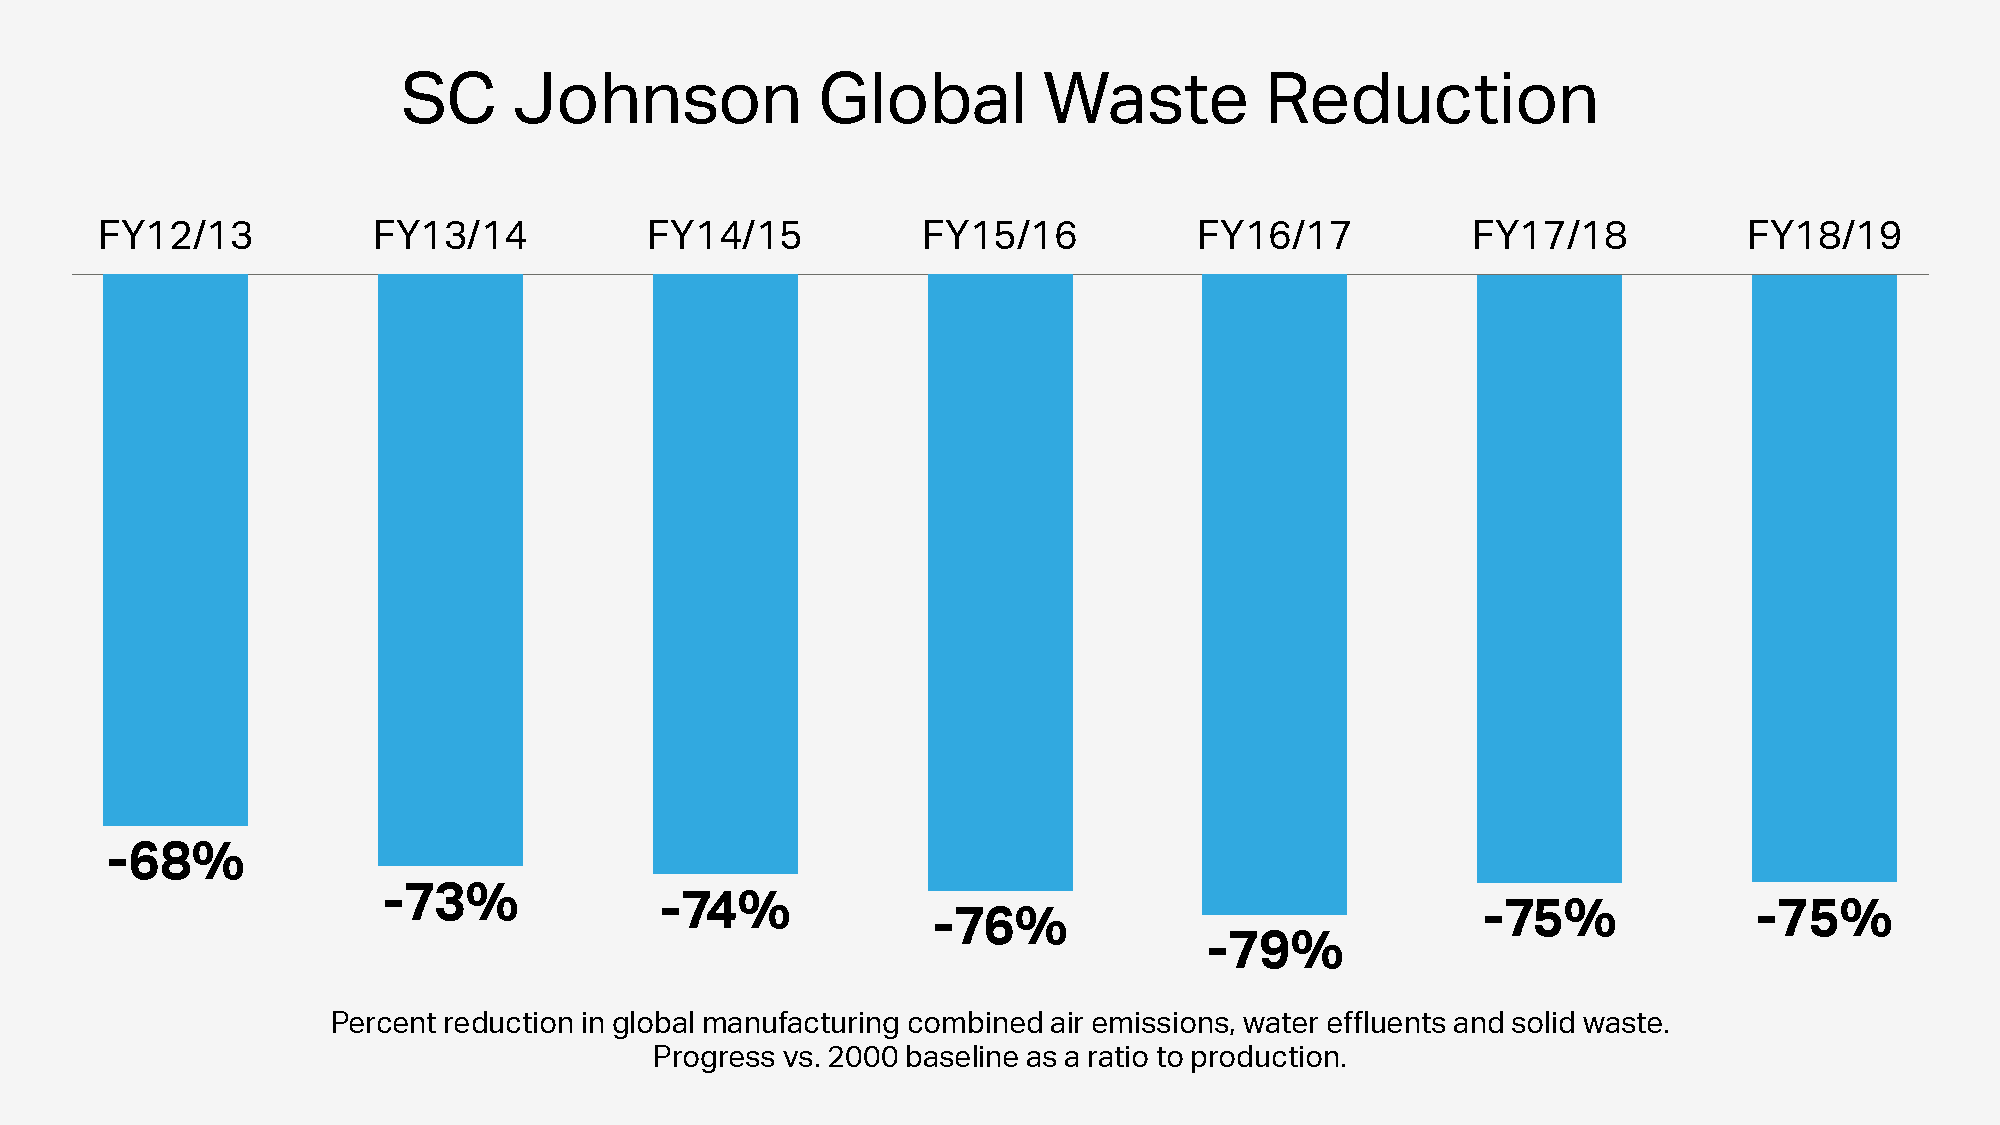 SC Johnson Global Waste Reduction Over the Years